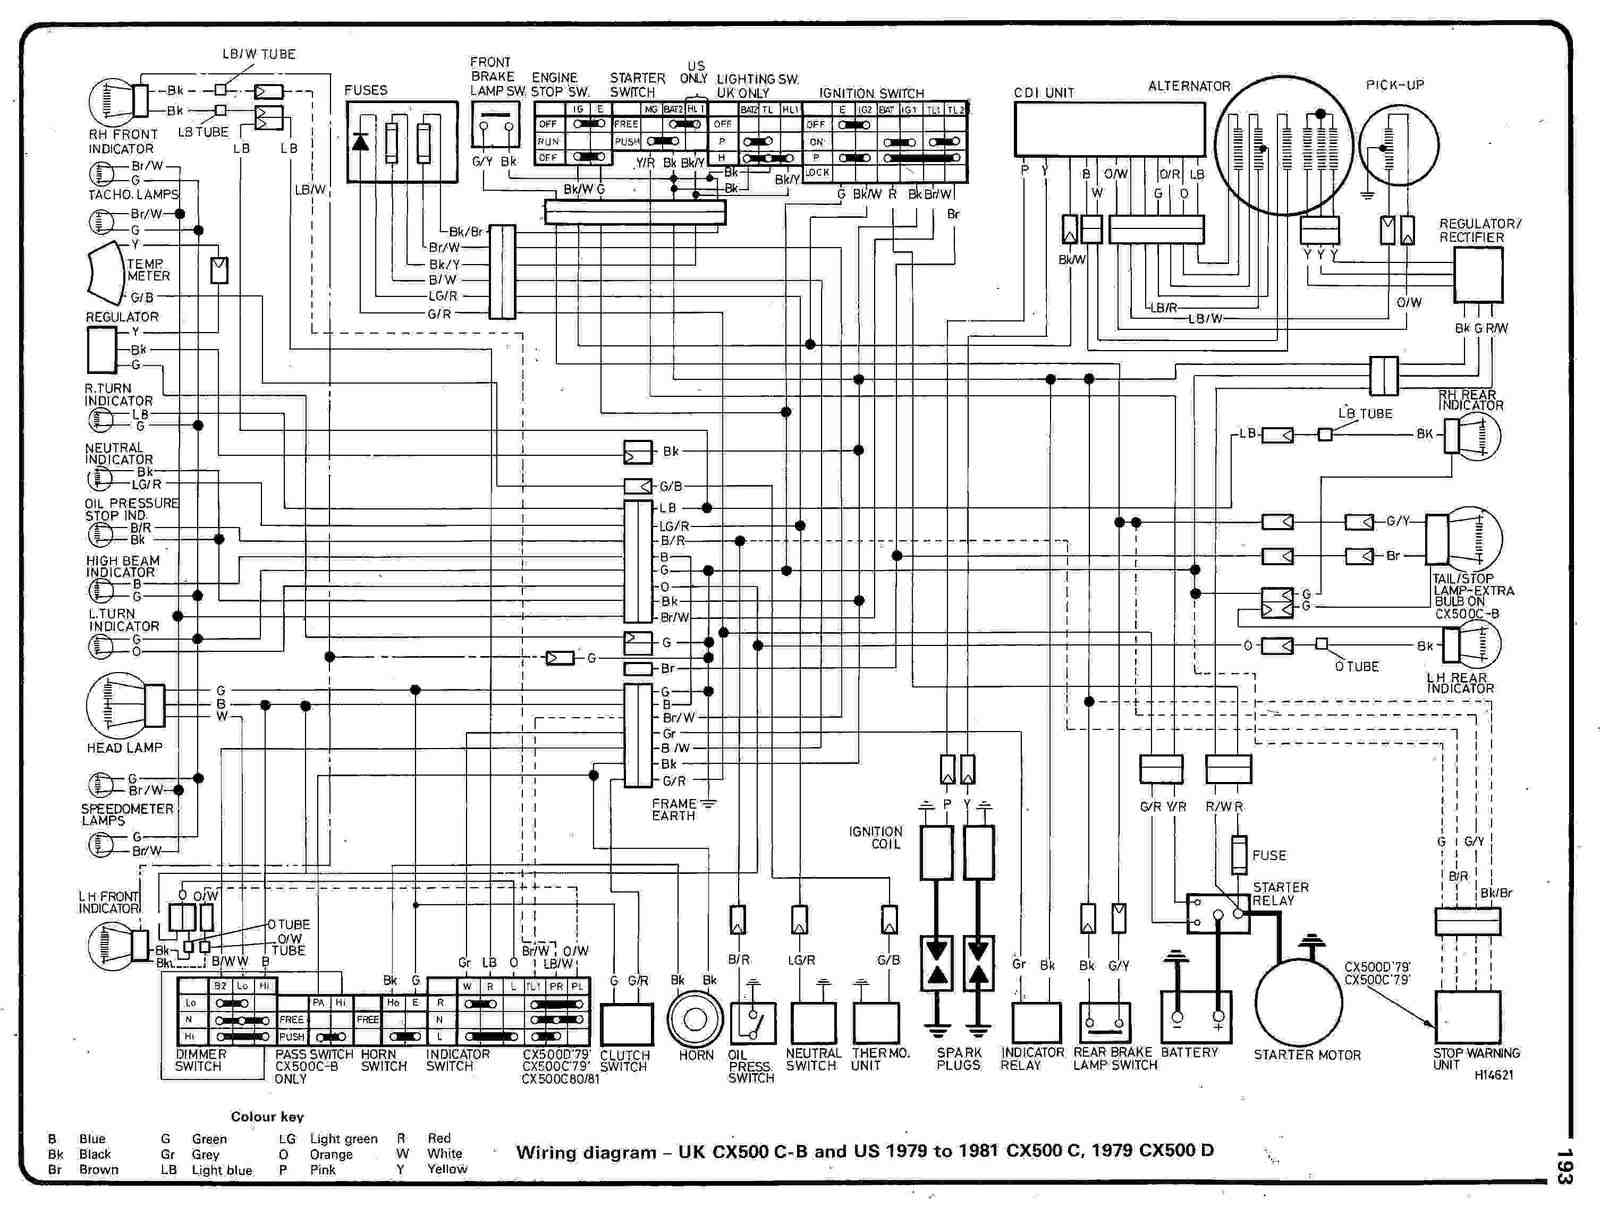 cm400 wiring diagram wiring woes ford 900 wiring diagram